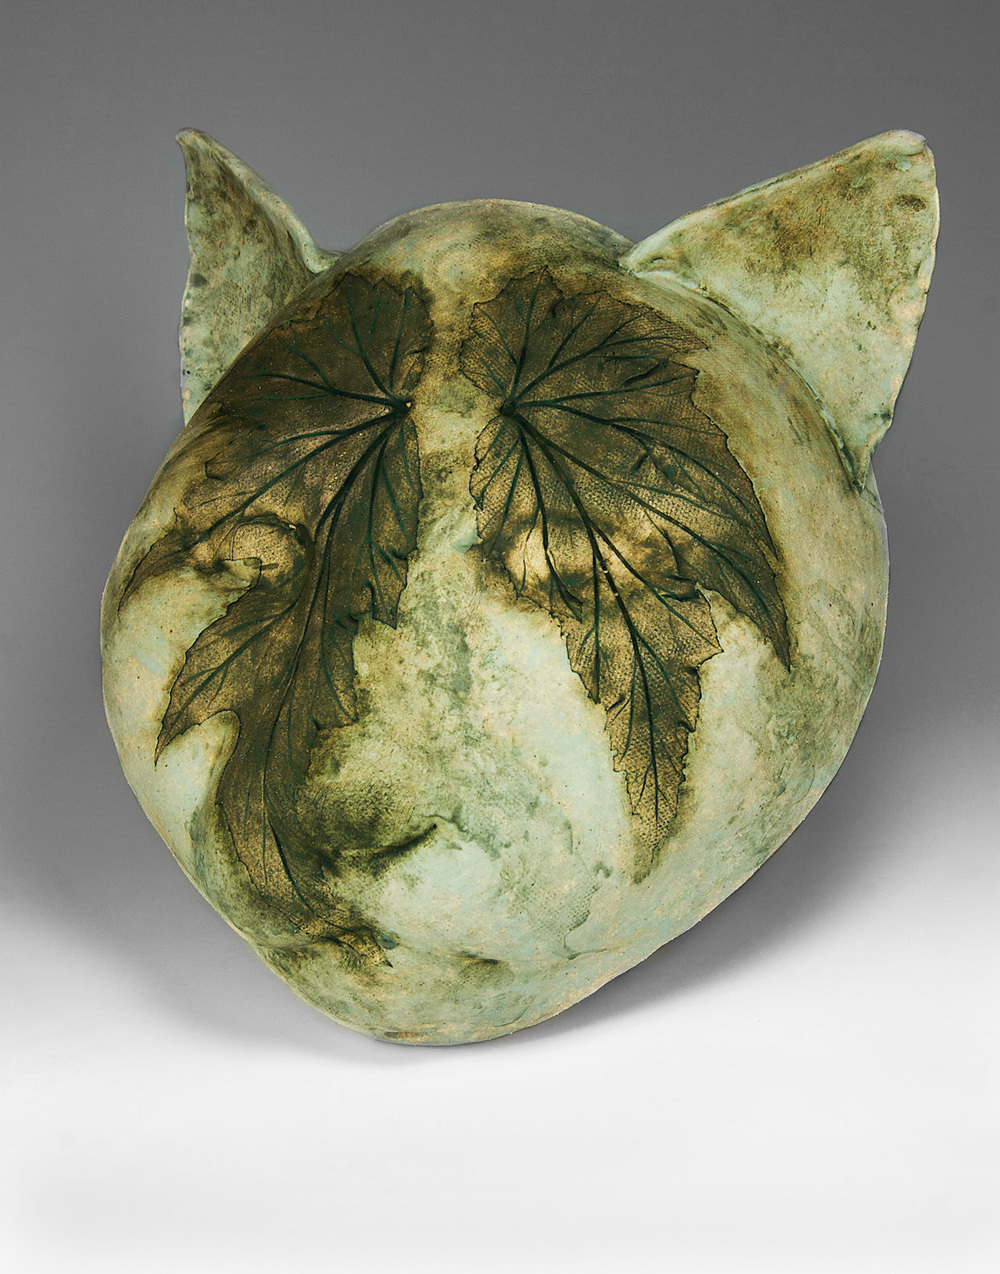 linda william's green cat face planter professionally photographed by john higby of eugene oregon on a gradient background